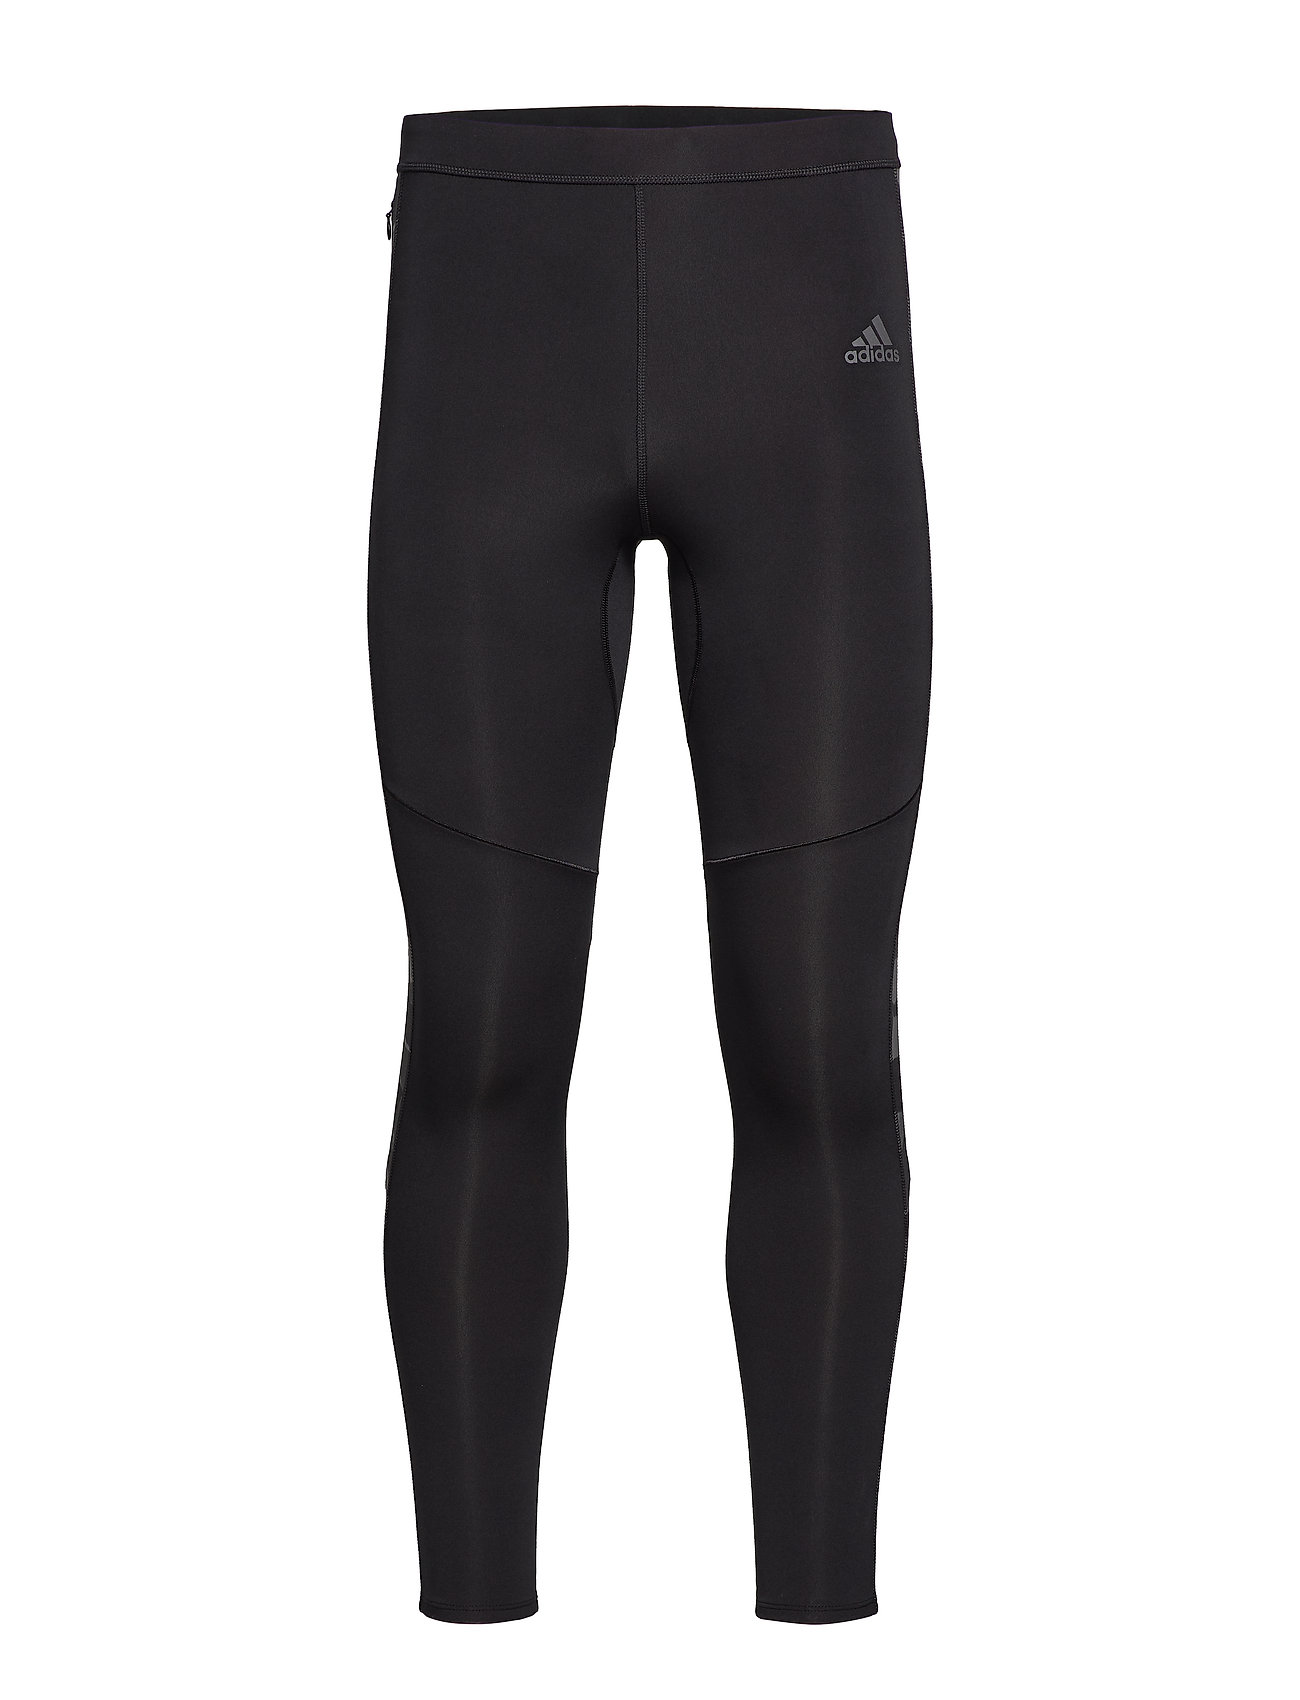 Adidas OWN THE RUN CAM Tights & shorts